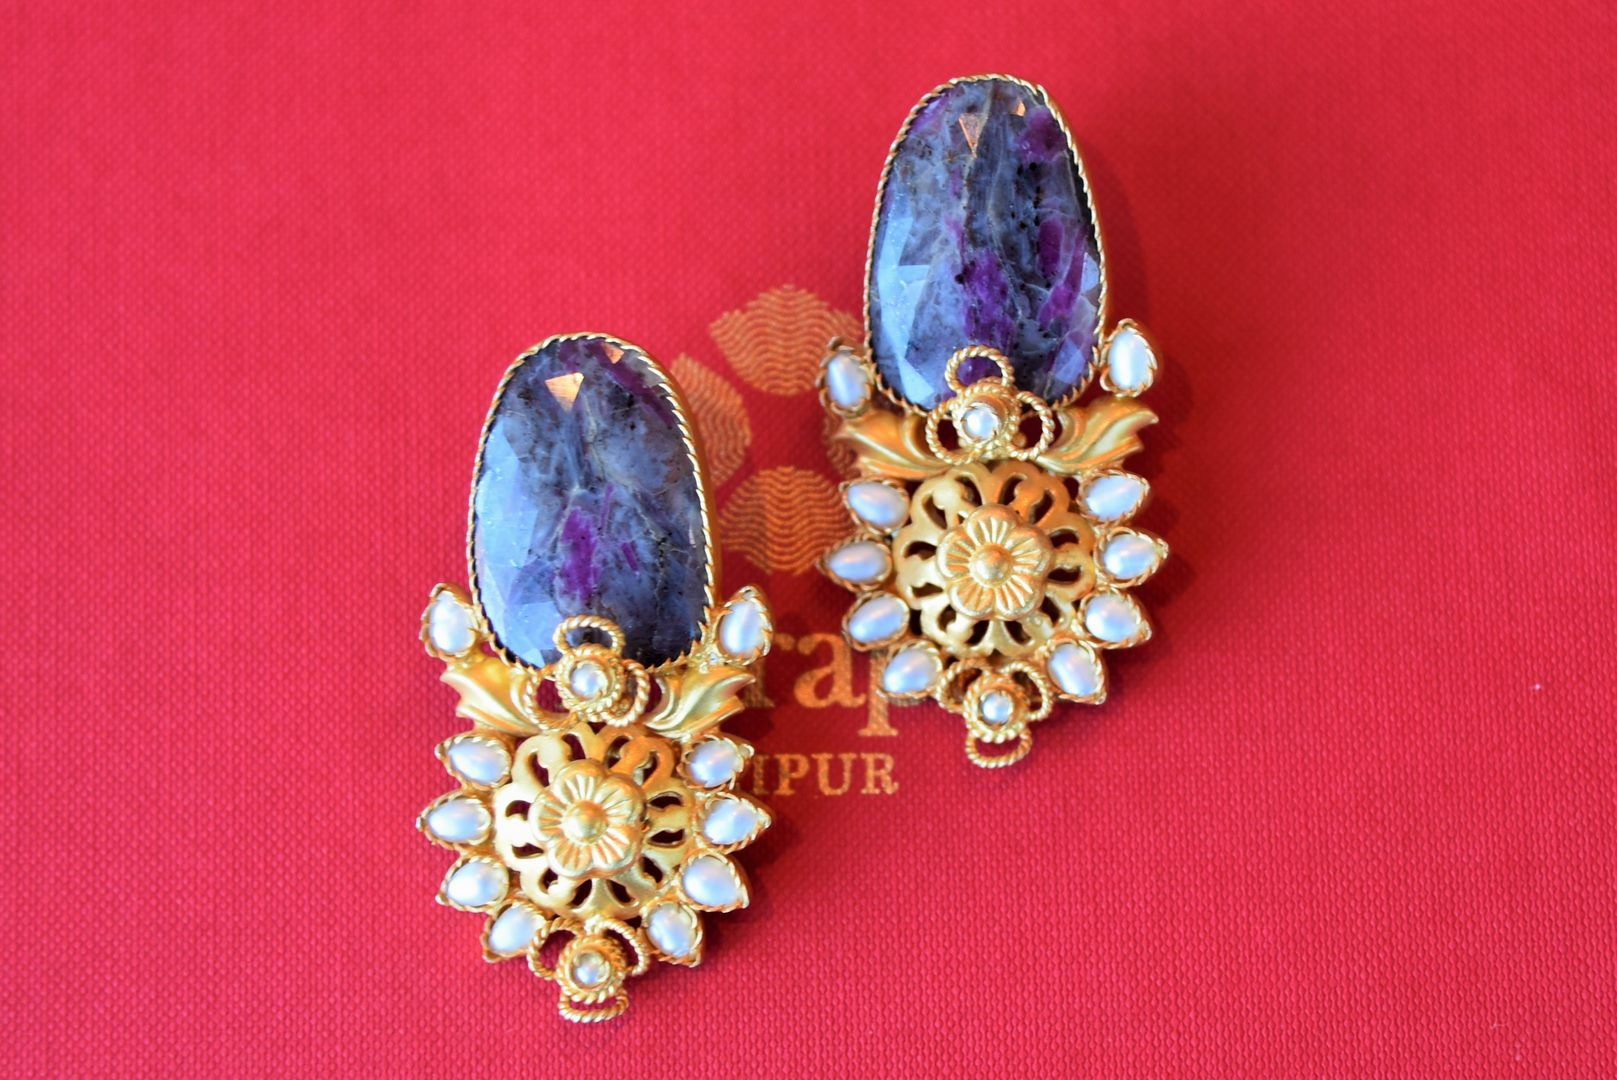 Shop Amrapali beautiful silver gold plated pearl earrings online in USA with blue stone. Add spark to your ethnic attires with beautiful Indian silver gold plated jewelry, wedding jewelry, silver gold plated necklaces from Pure Elegance Indian fashion store in USA.-flatlay